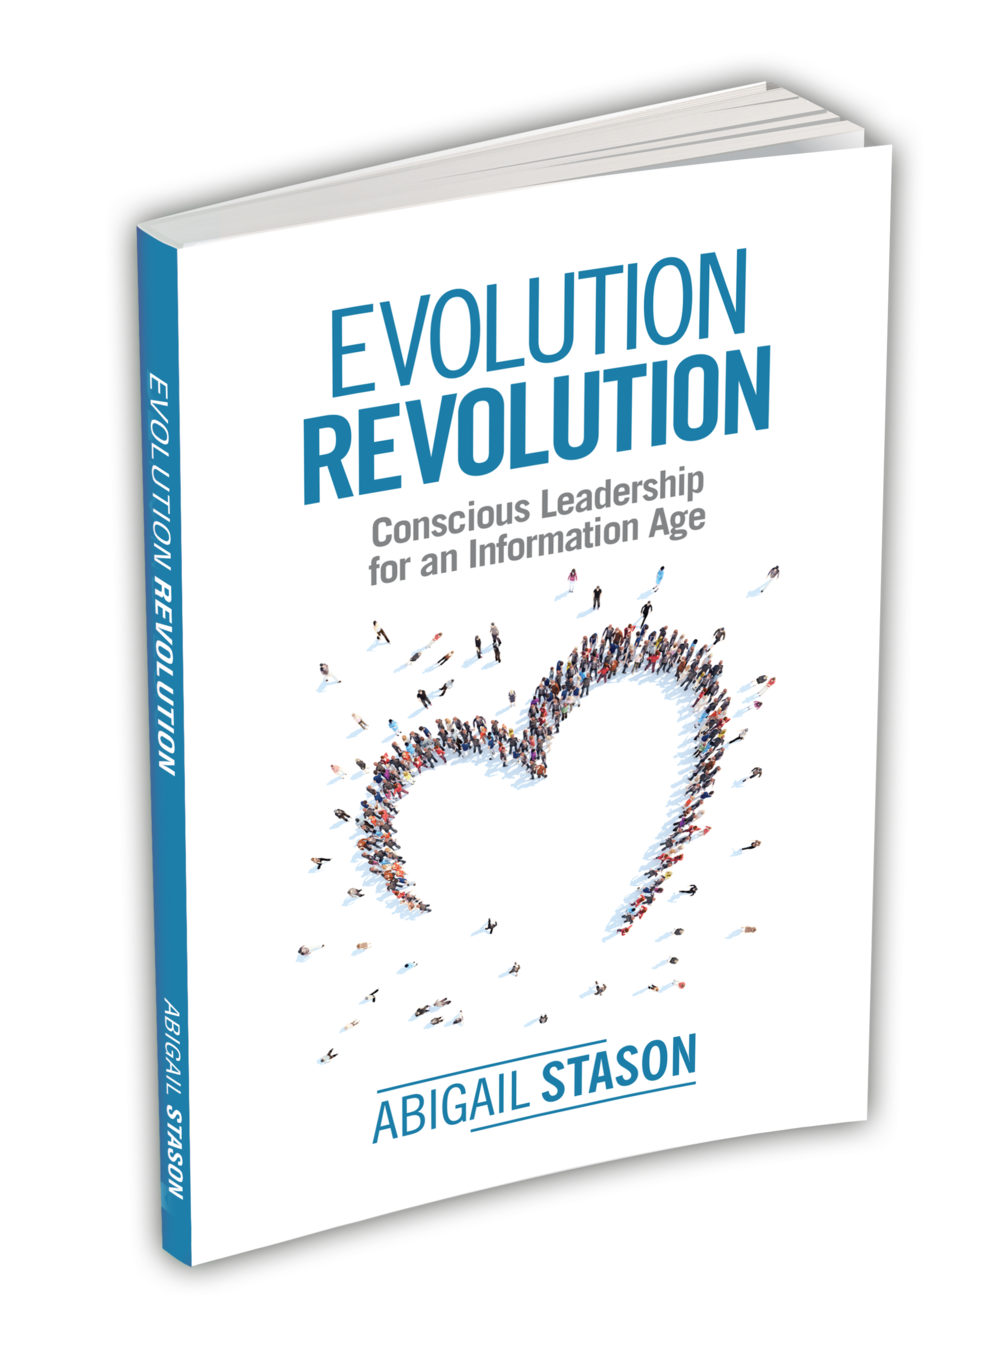 Evolution Revolution by Abigail Stason